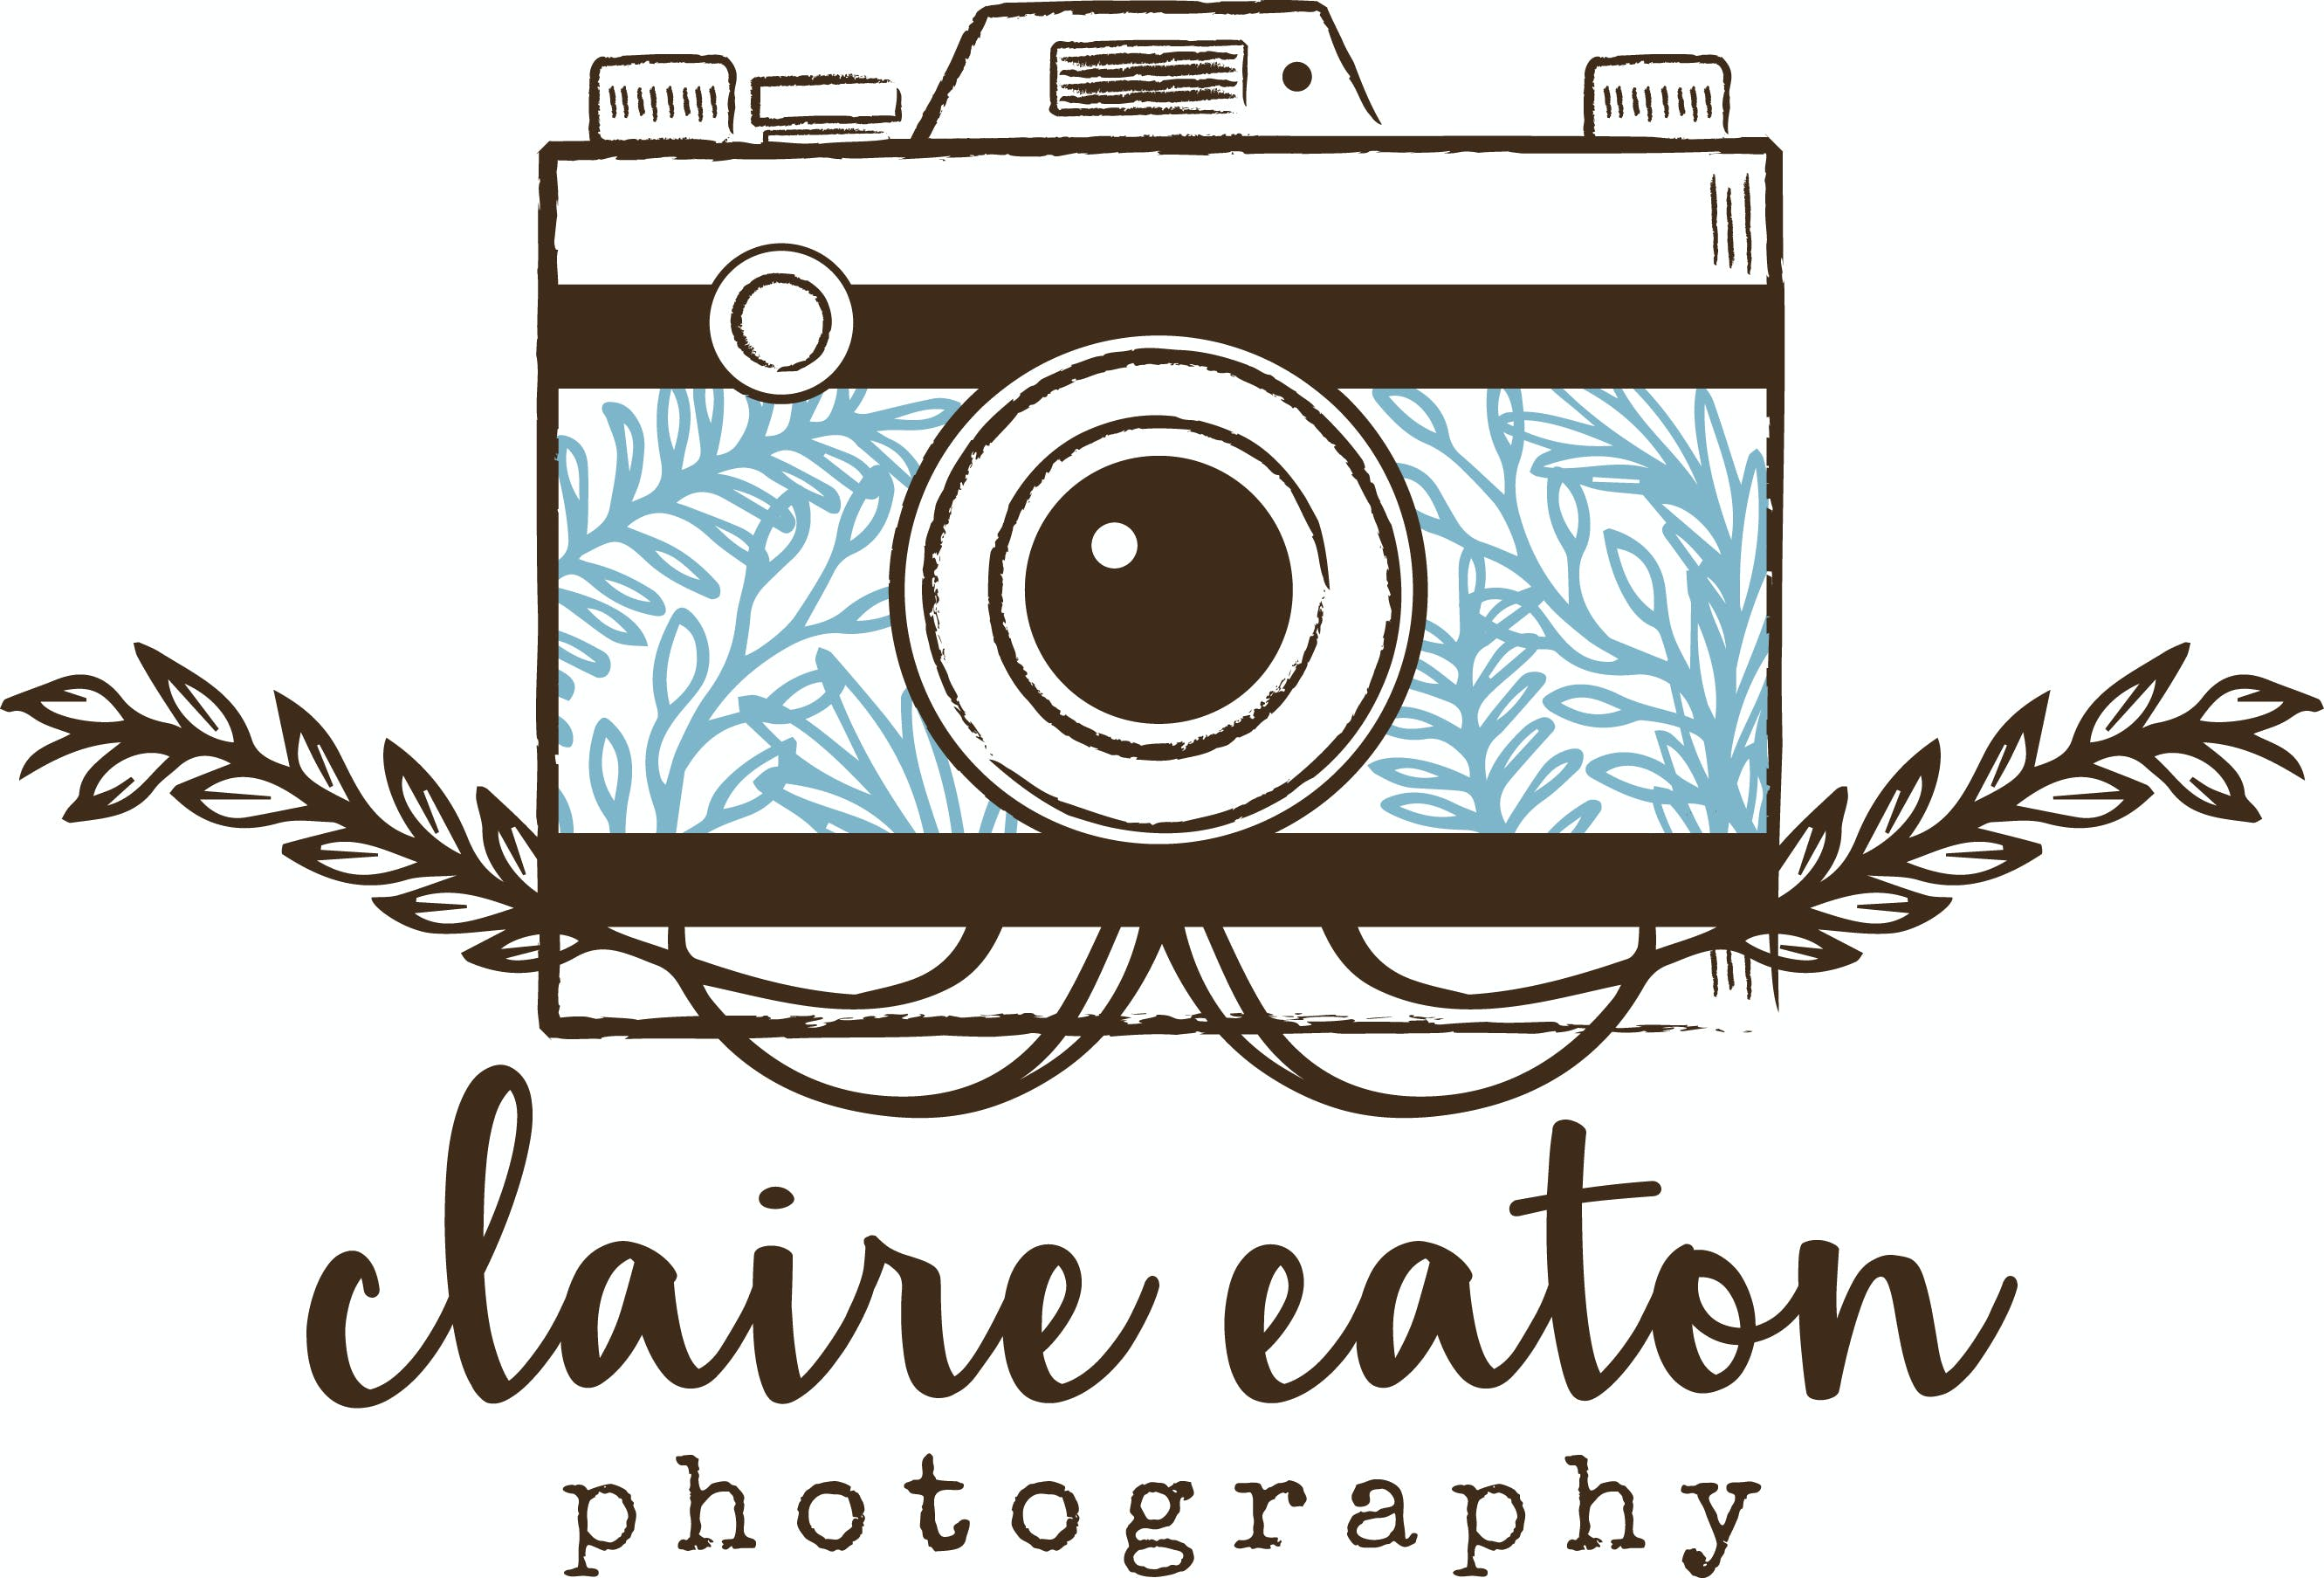 Claire eaton does both property and people photoshoots - great fun and great work